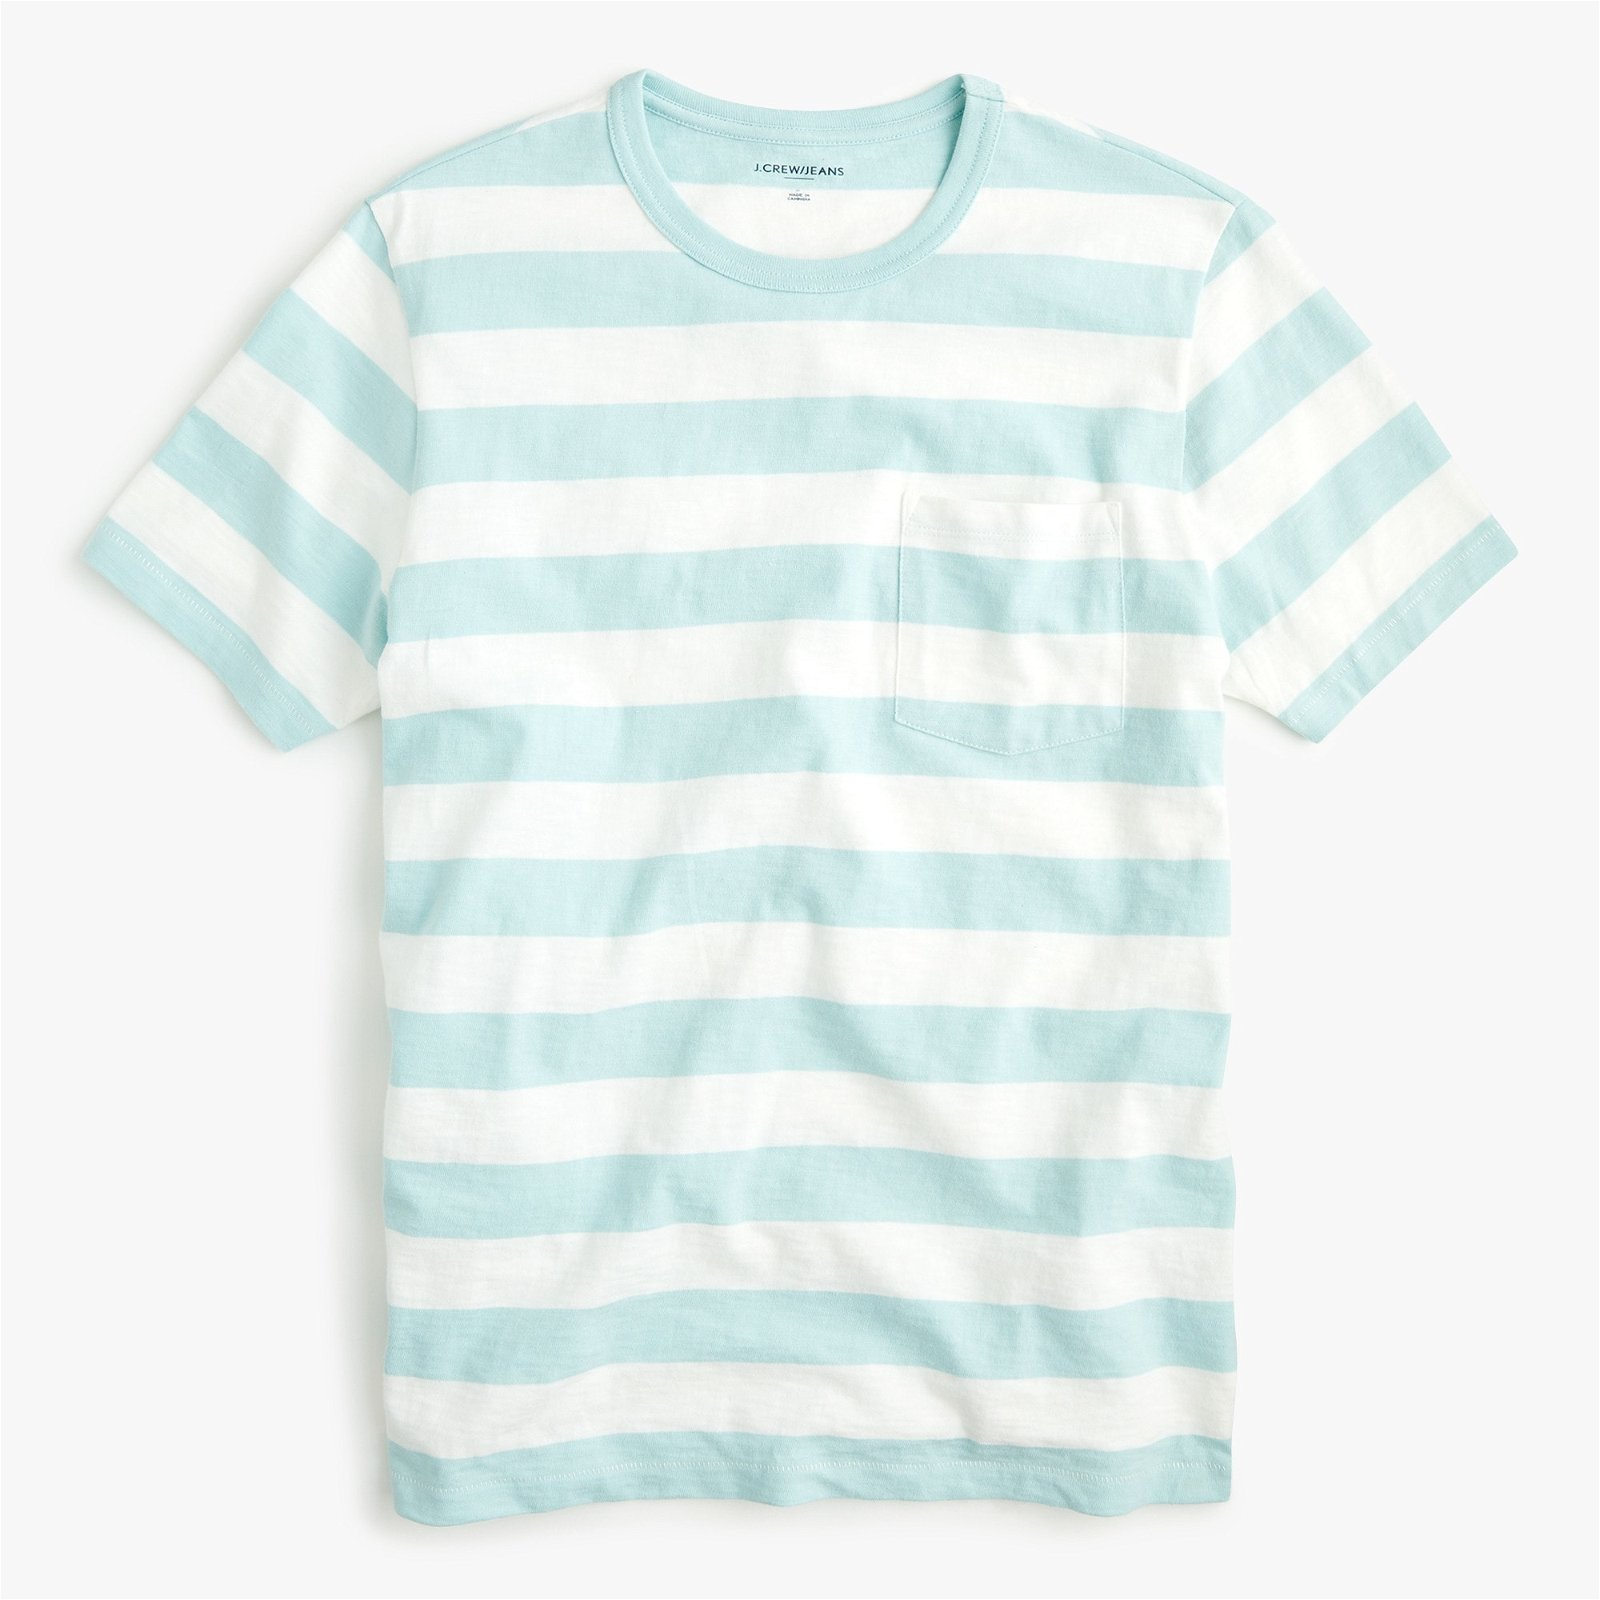 Classic Slub jersey pocket T-shirt in mint stripe